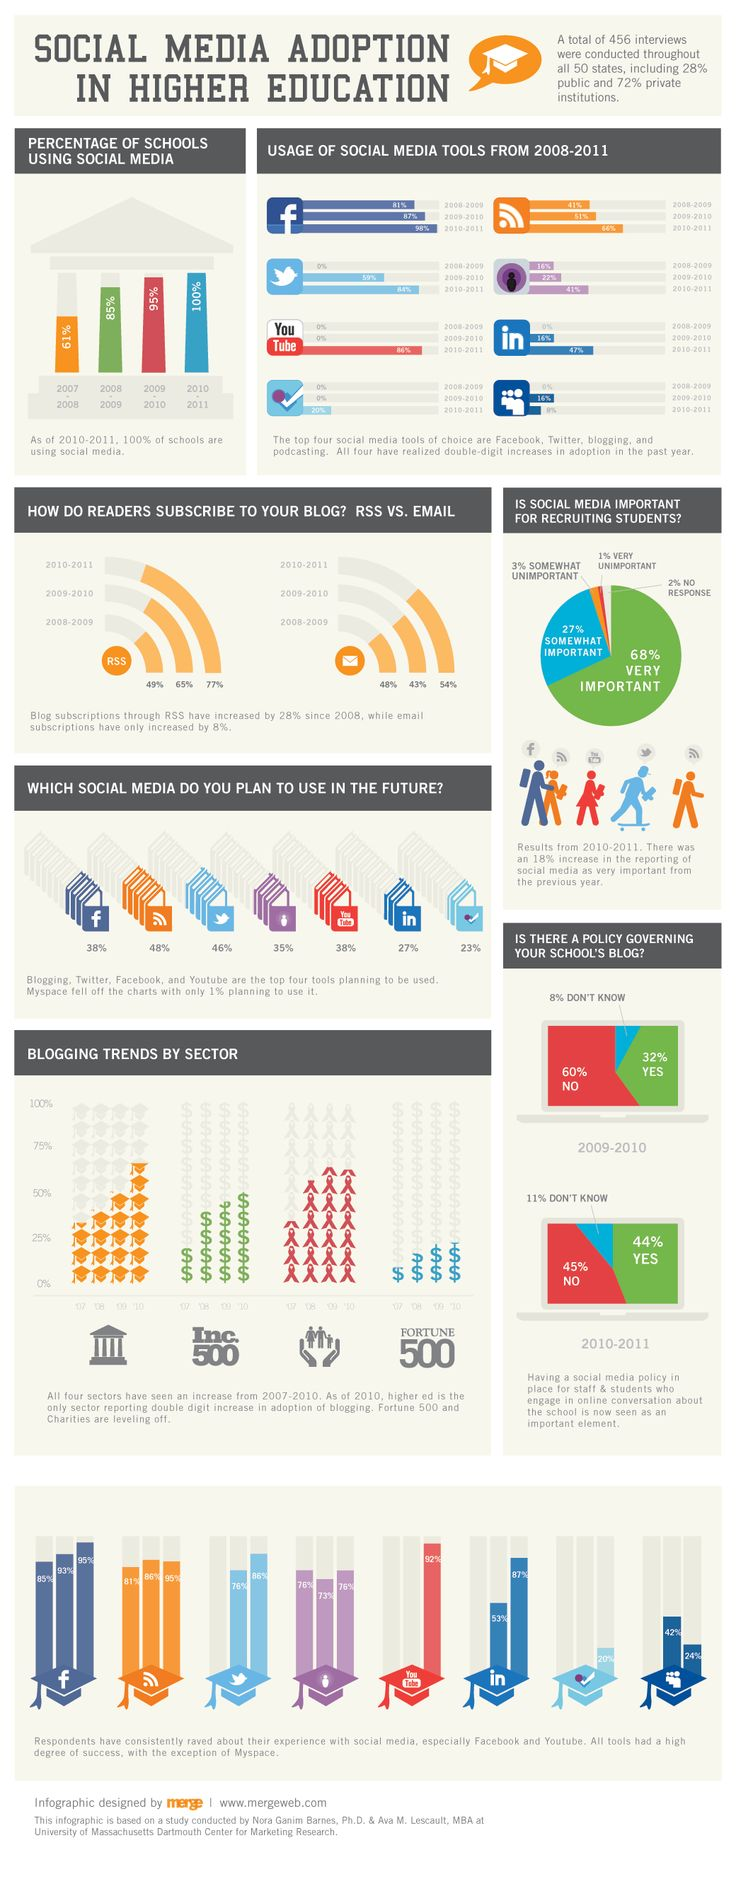 Social Media Adoption in Higher Education Infographic | Designed by Merge, based on a study by University of Massachusetts Dartmouth Center for Marketing Research